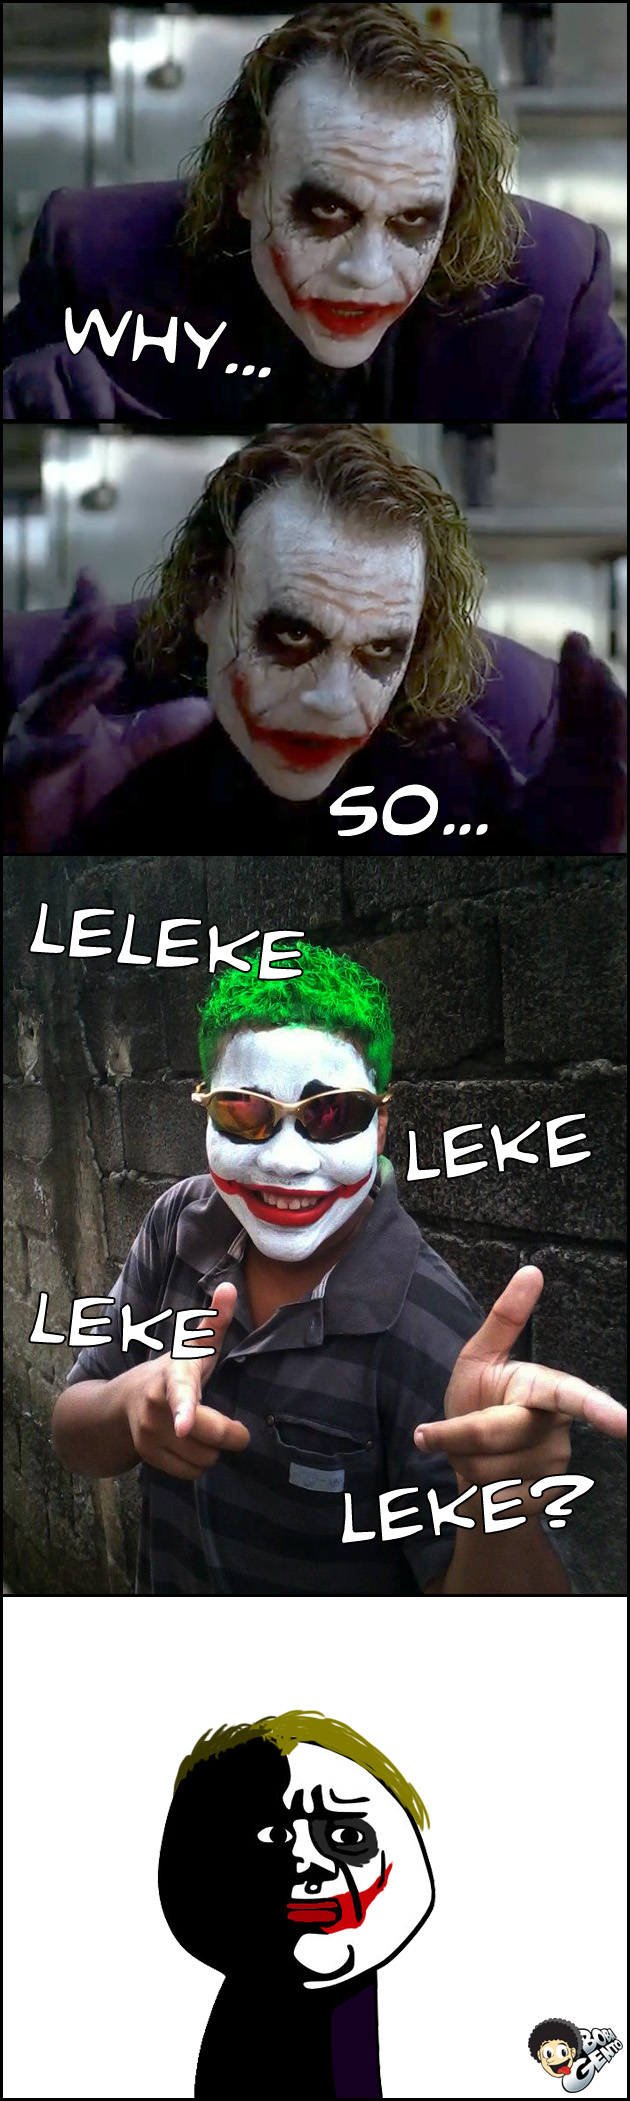 WHY SO LELEKE